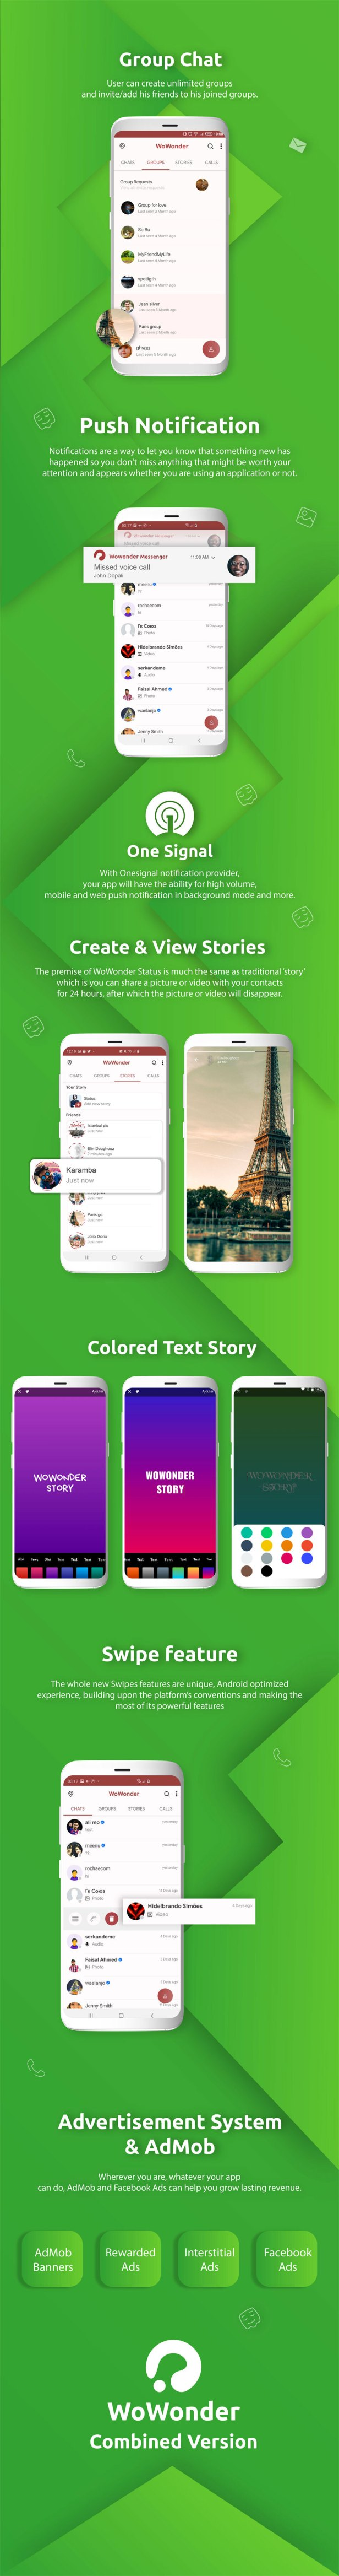 WoWonder Android Messenger - Mobile Application for WoWonder Social Script - 4